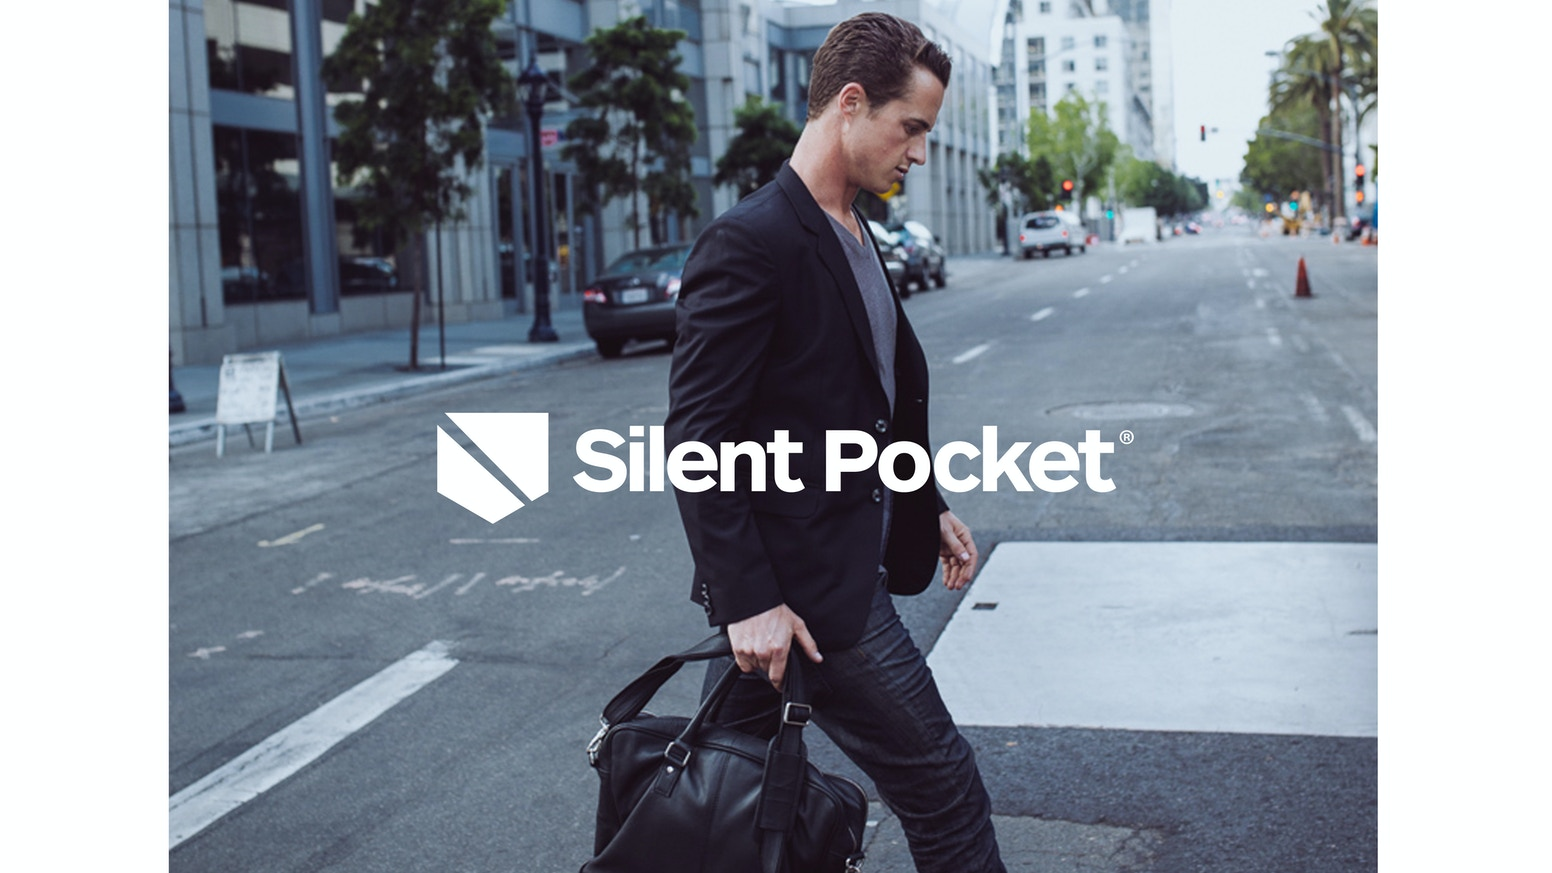 Everything you carry from your phone, car keys and computer are  vulnerable to leaking information. Silent Pocket is a patented product  line of everyday carry accessories that give you much needed privacy and  security. See us now